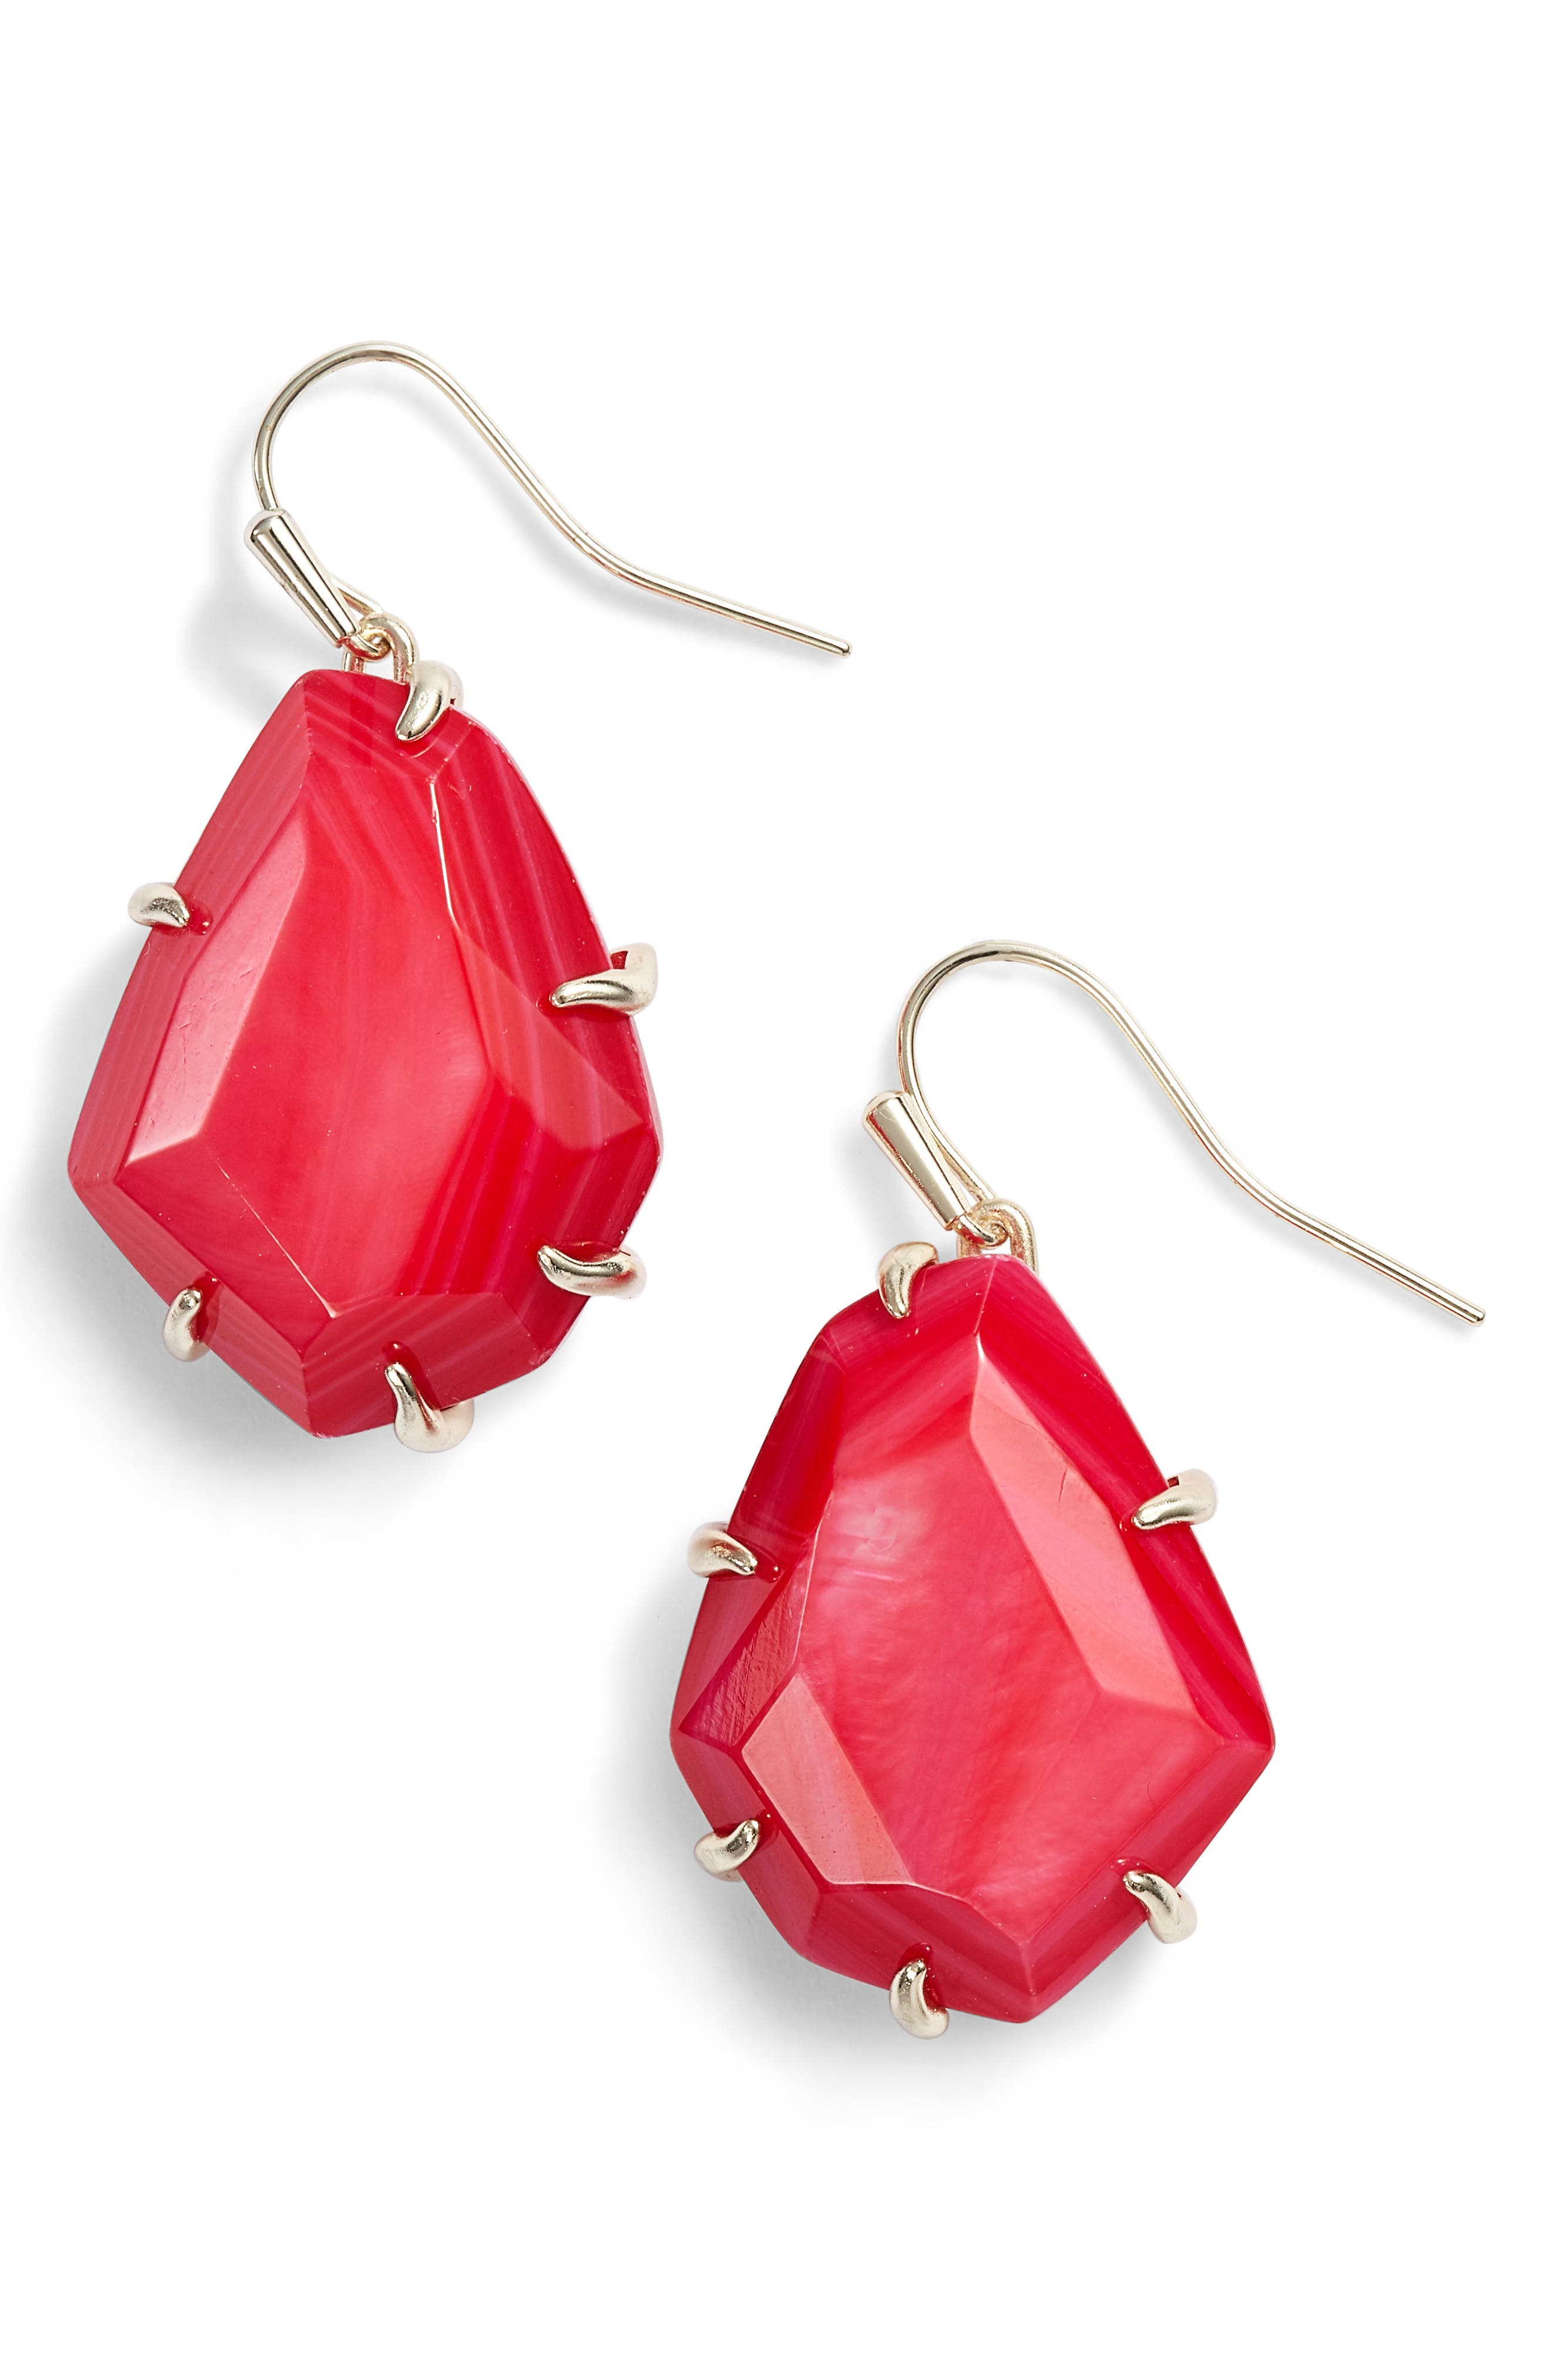 Rosenell Stone Earrings,                         Main,                         color, Red Mop/ Gold